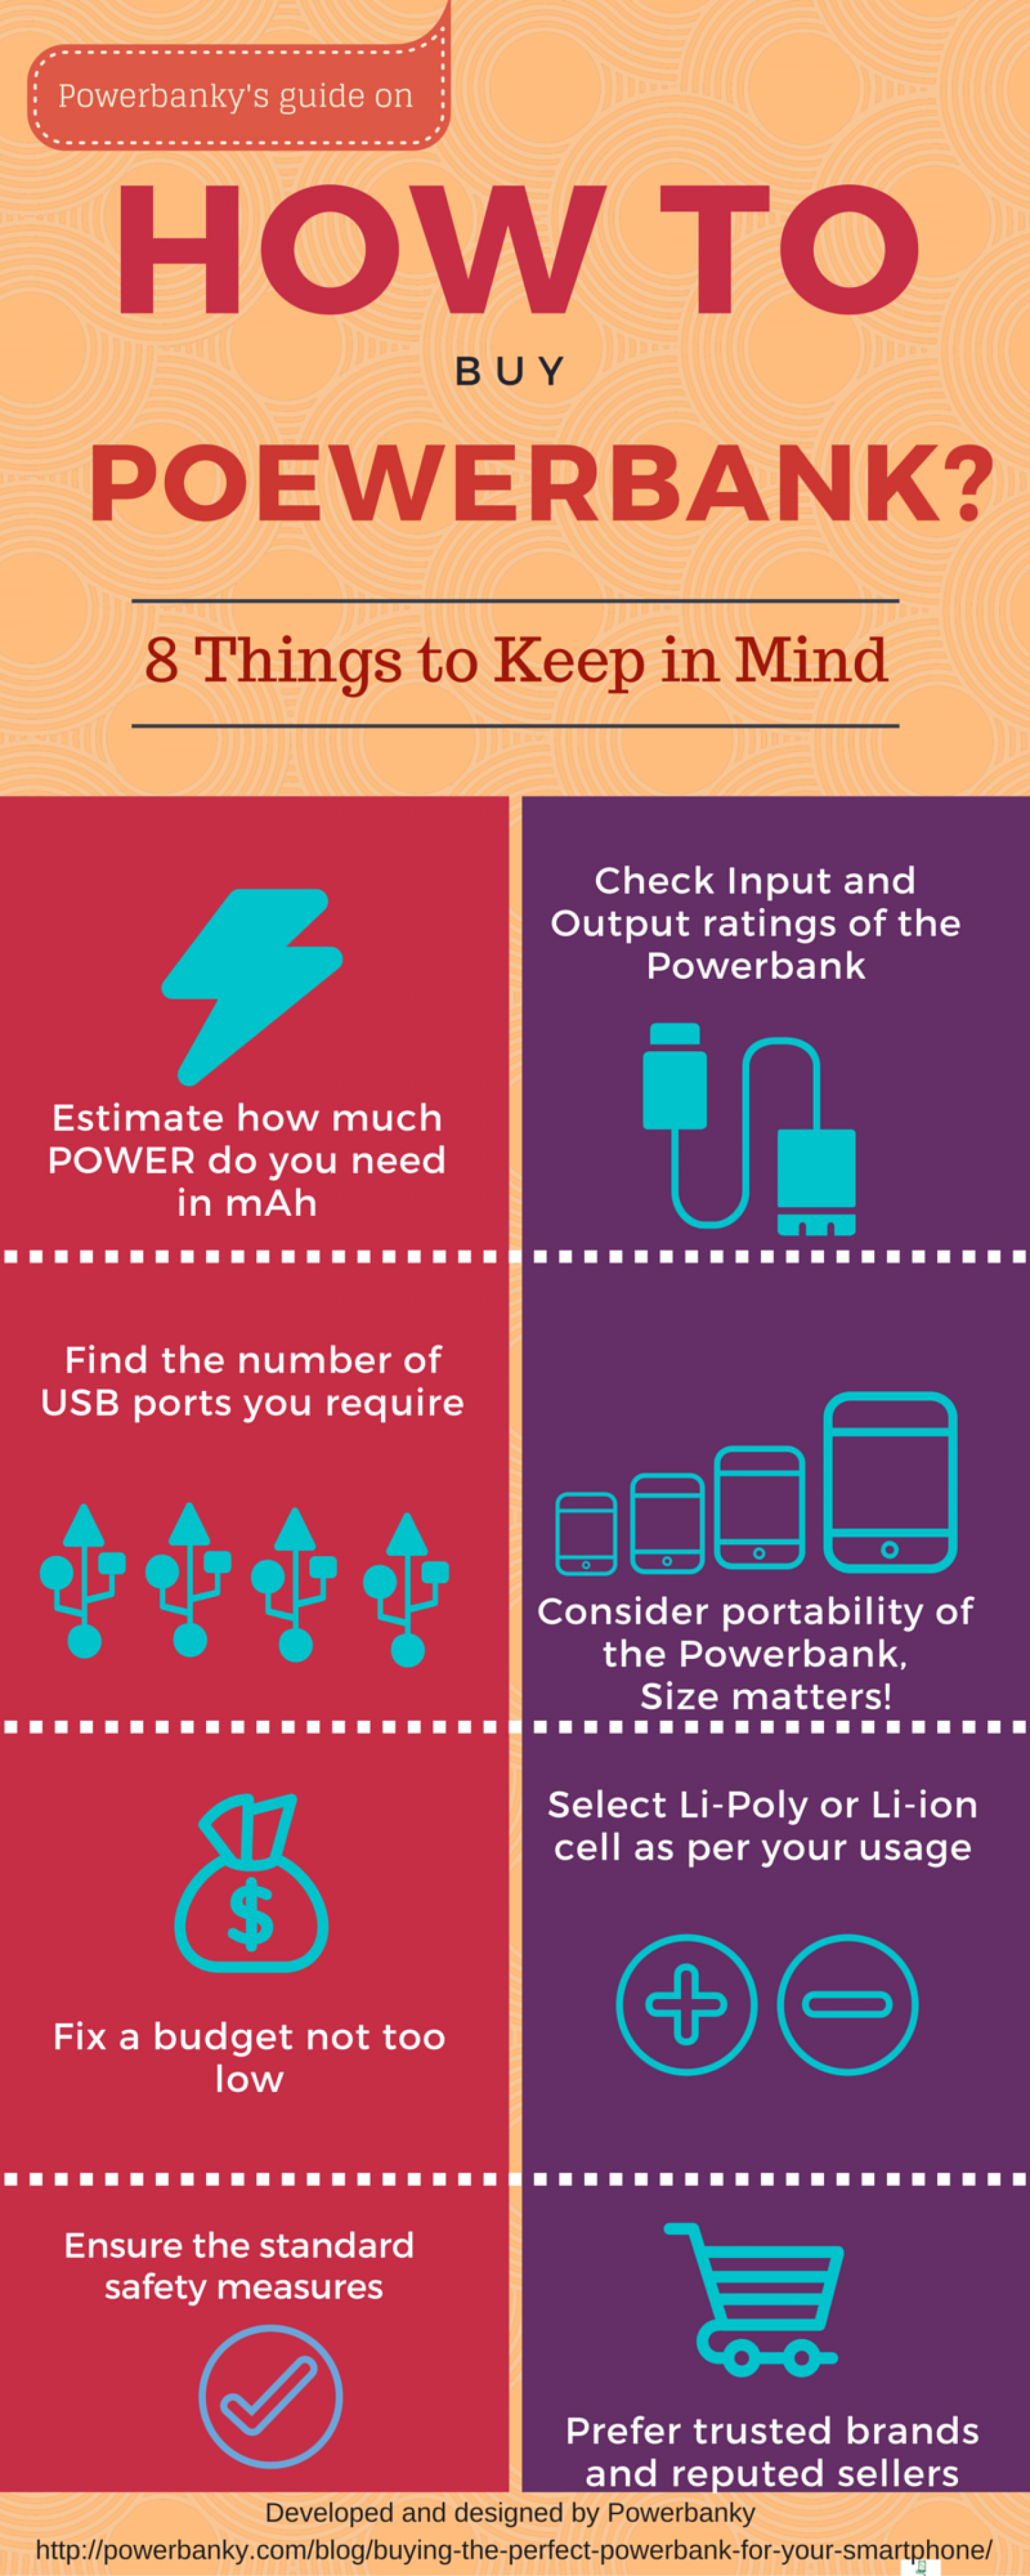 How to buy a Powerbank Infographic